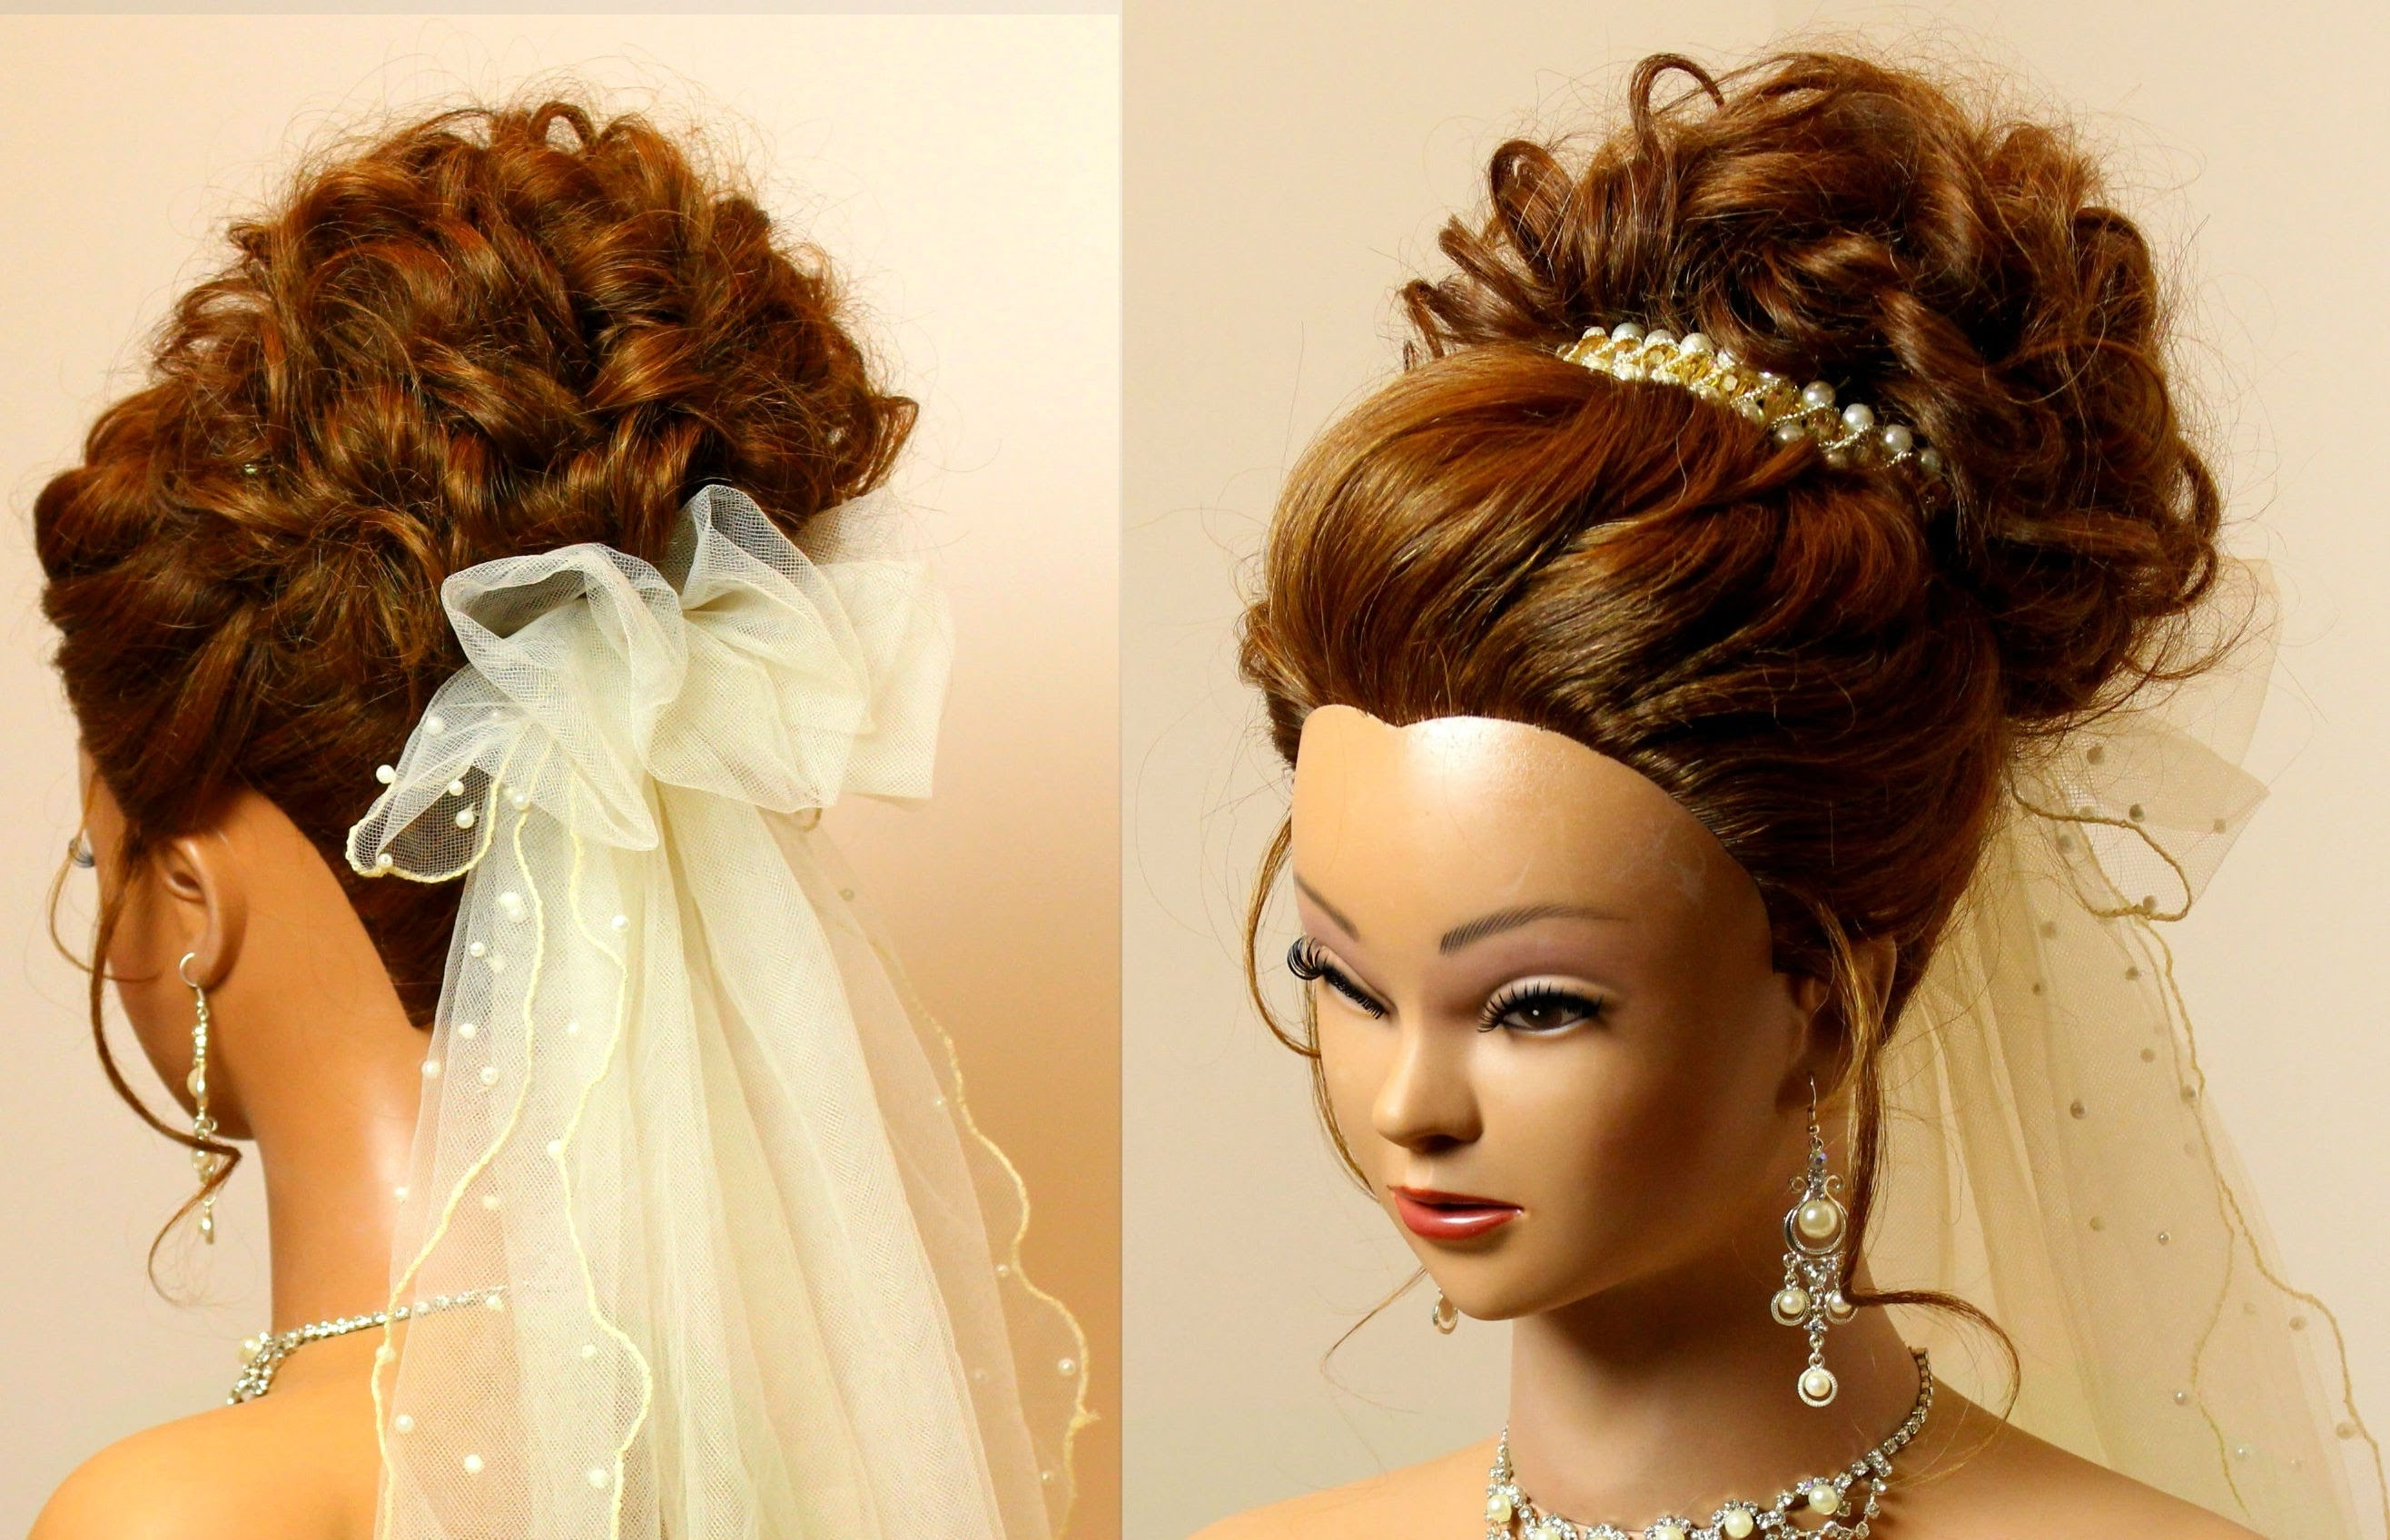 Wedding Hairstyles For Long Hair Updo – Hairstyles Inspiring Intended For Favorite Long Hair Up Wedding Hairstyles (View 3 of 15)